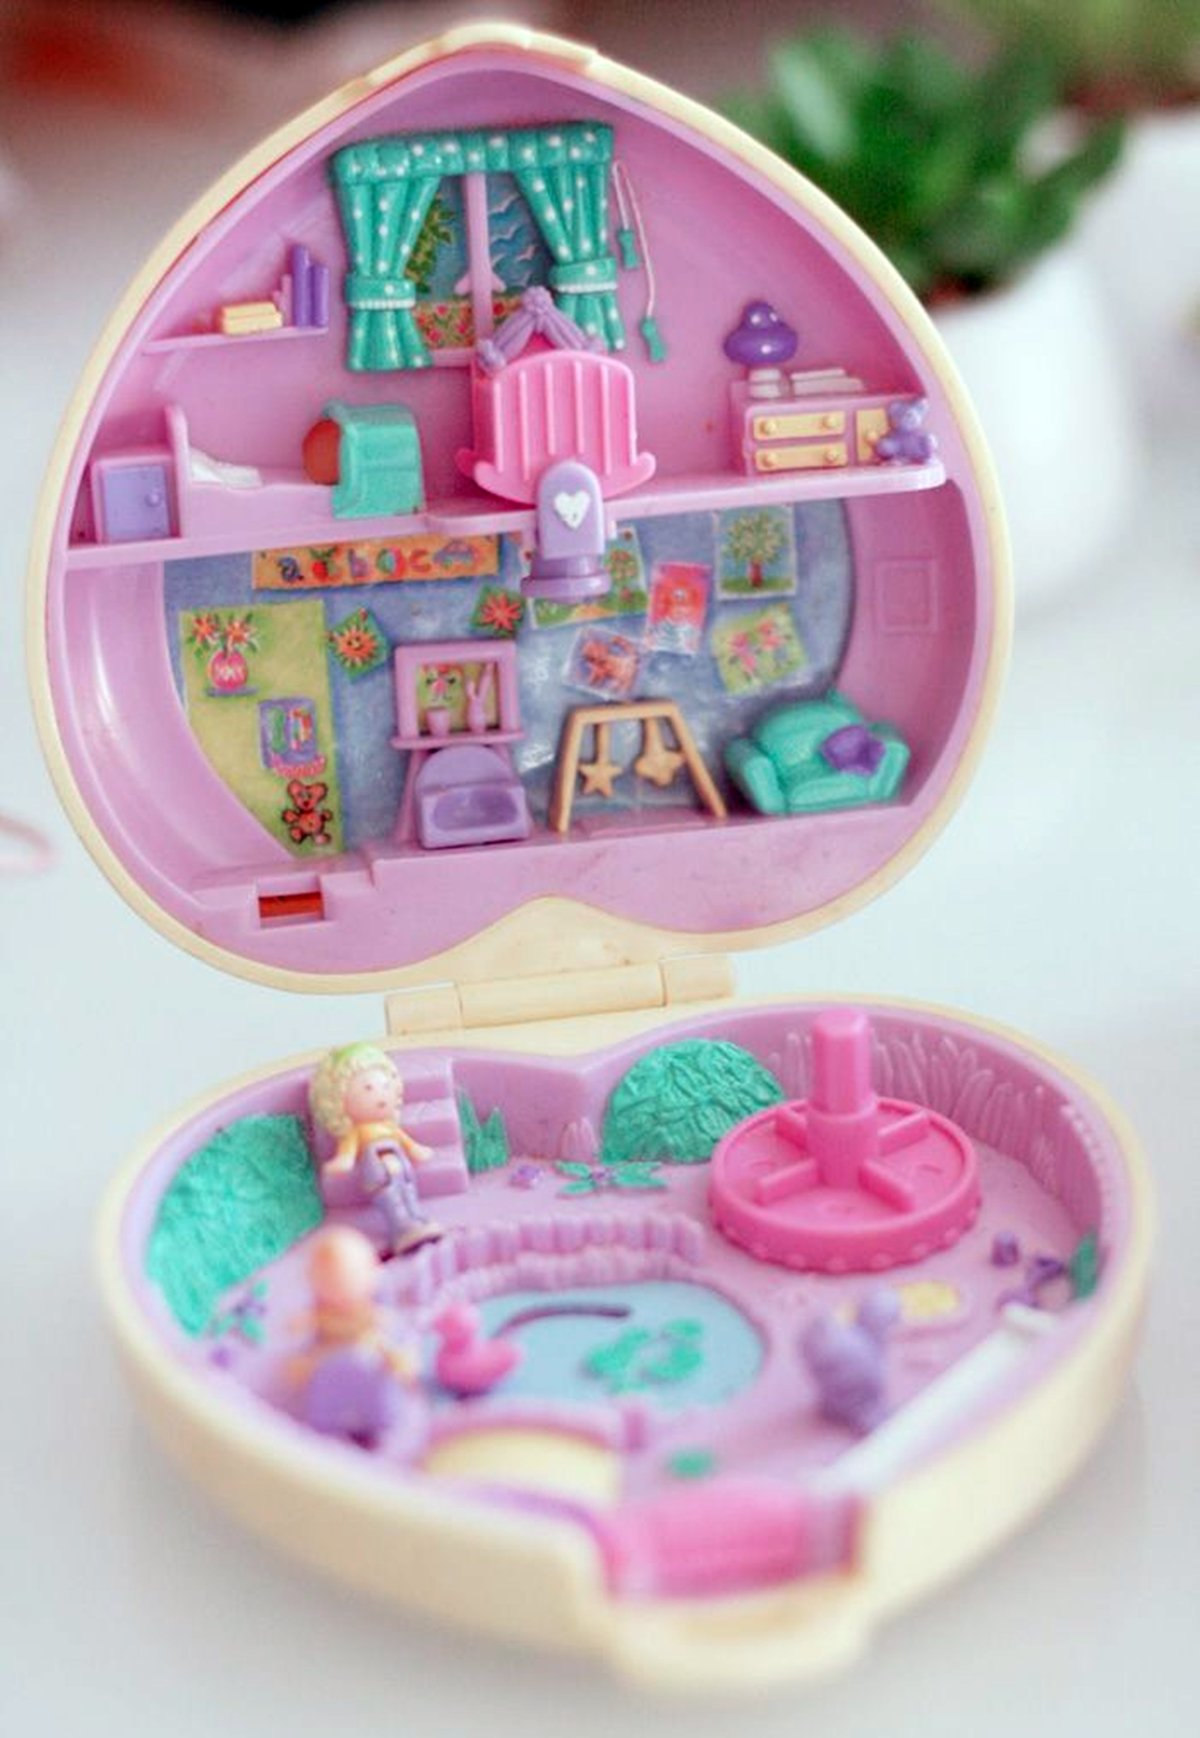 3 20 Things You Would Find In An 80s Girl's Bedroom